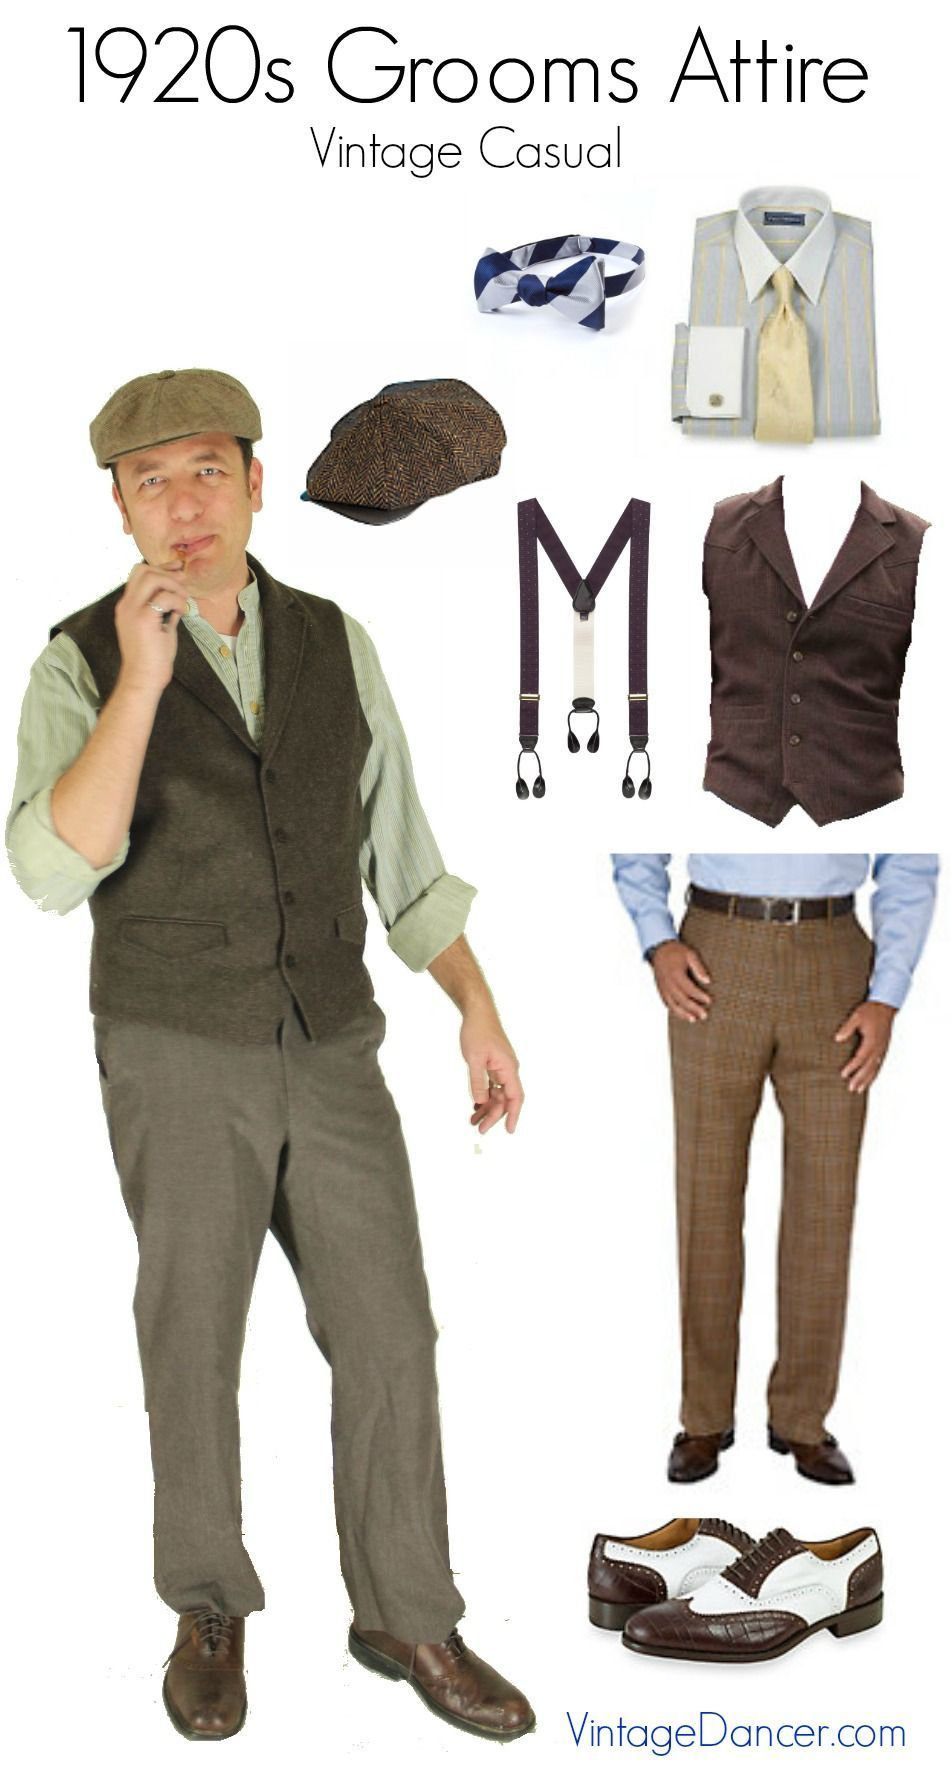 1920s Men Steampunk Geek Cloche Hats Vintage Prom Dresses Men Ties 1920s Style Top Hats Men S Grooming In 2020 1920s Mens Fashion Mens Outfits Vintage Clothing Men [ 1773 x 951 Pixel ]